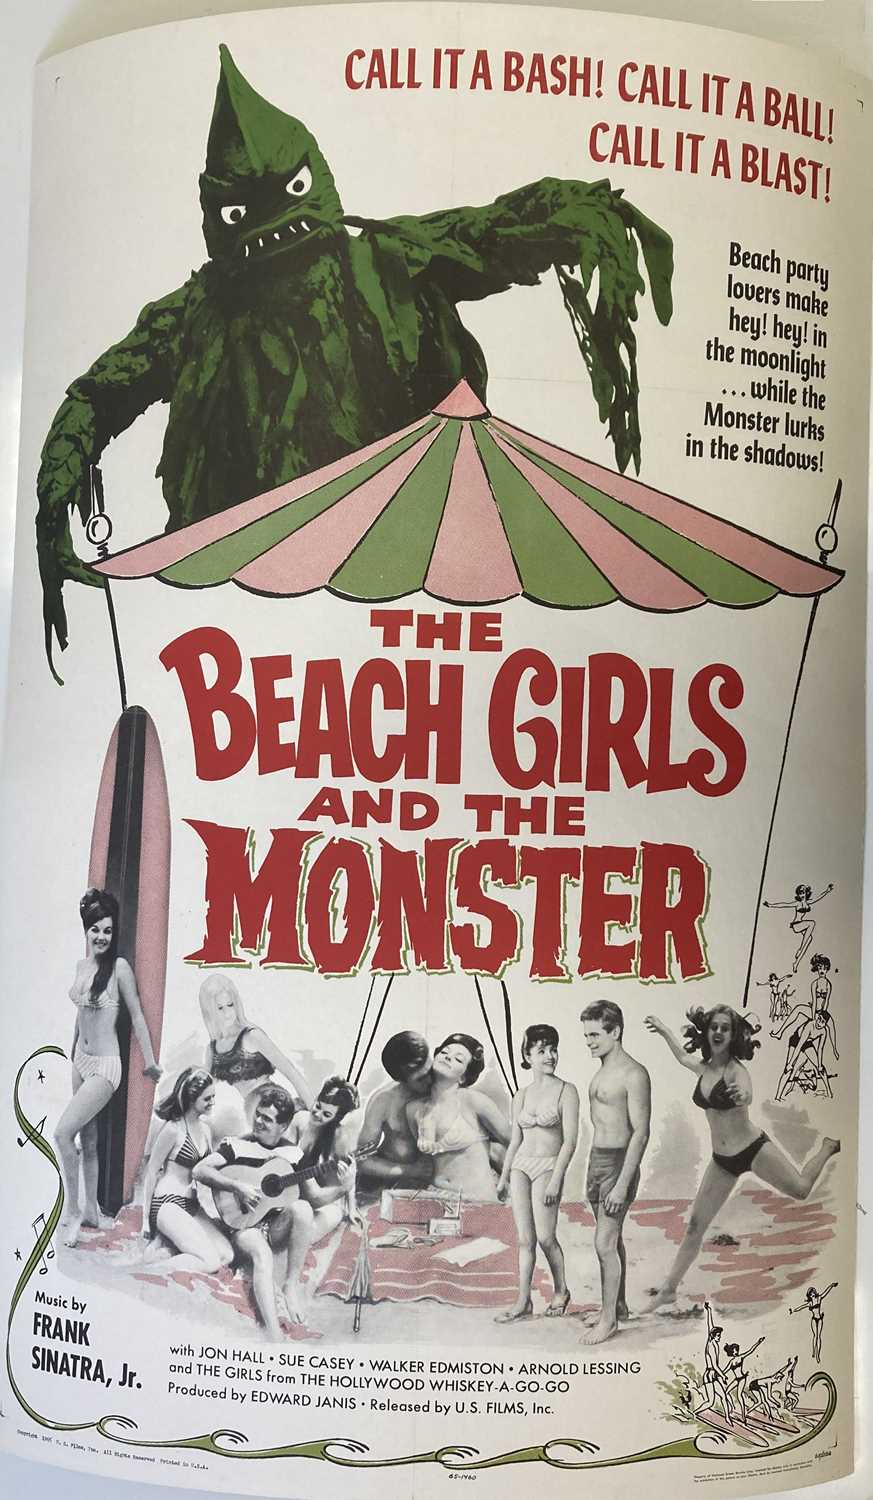 Lot 22 - BEACH GIRLS AND THE MONSTER US ONE SHEET POSTER